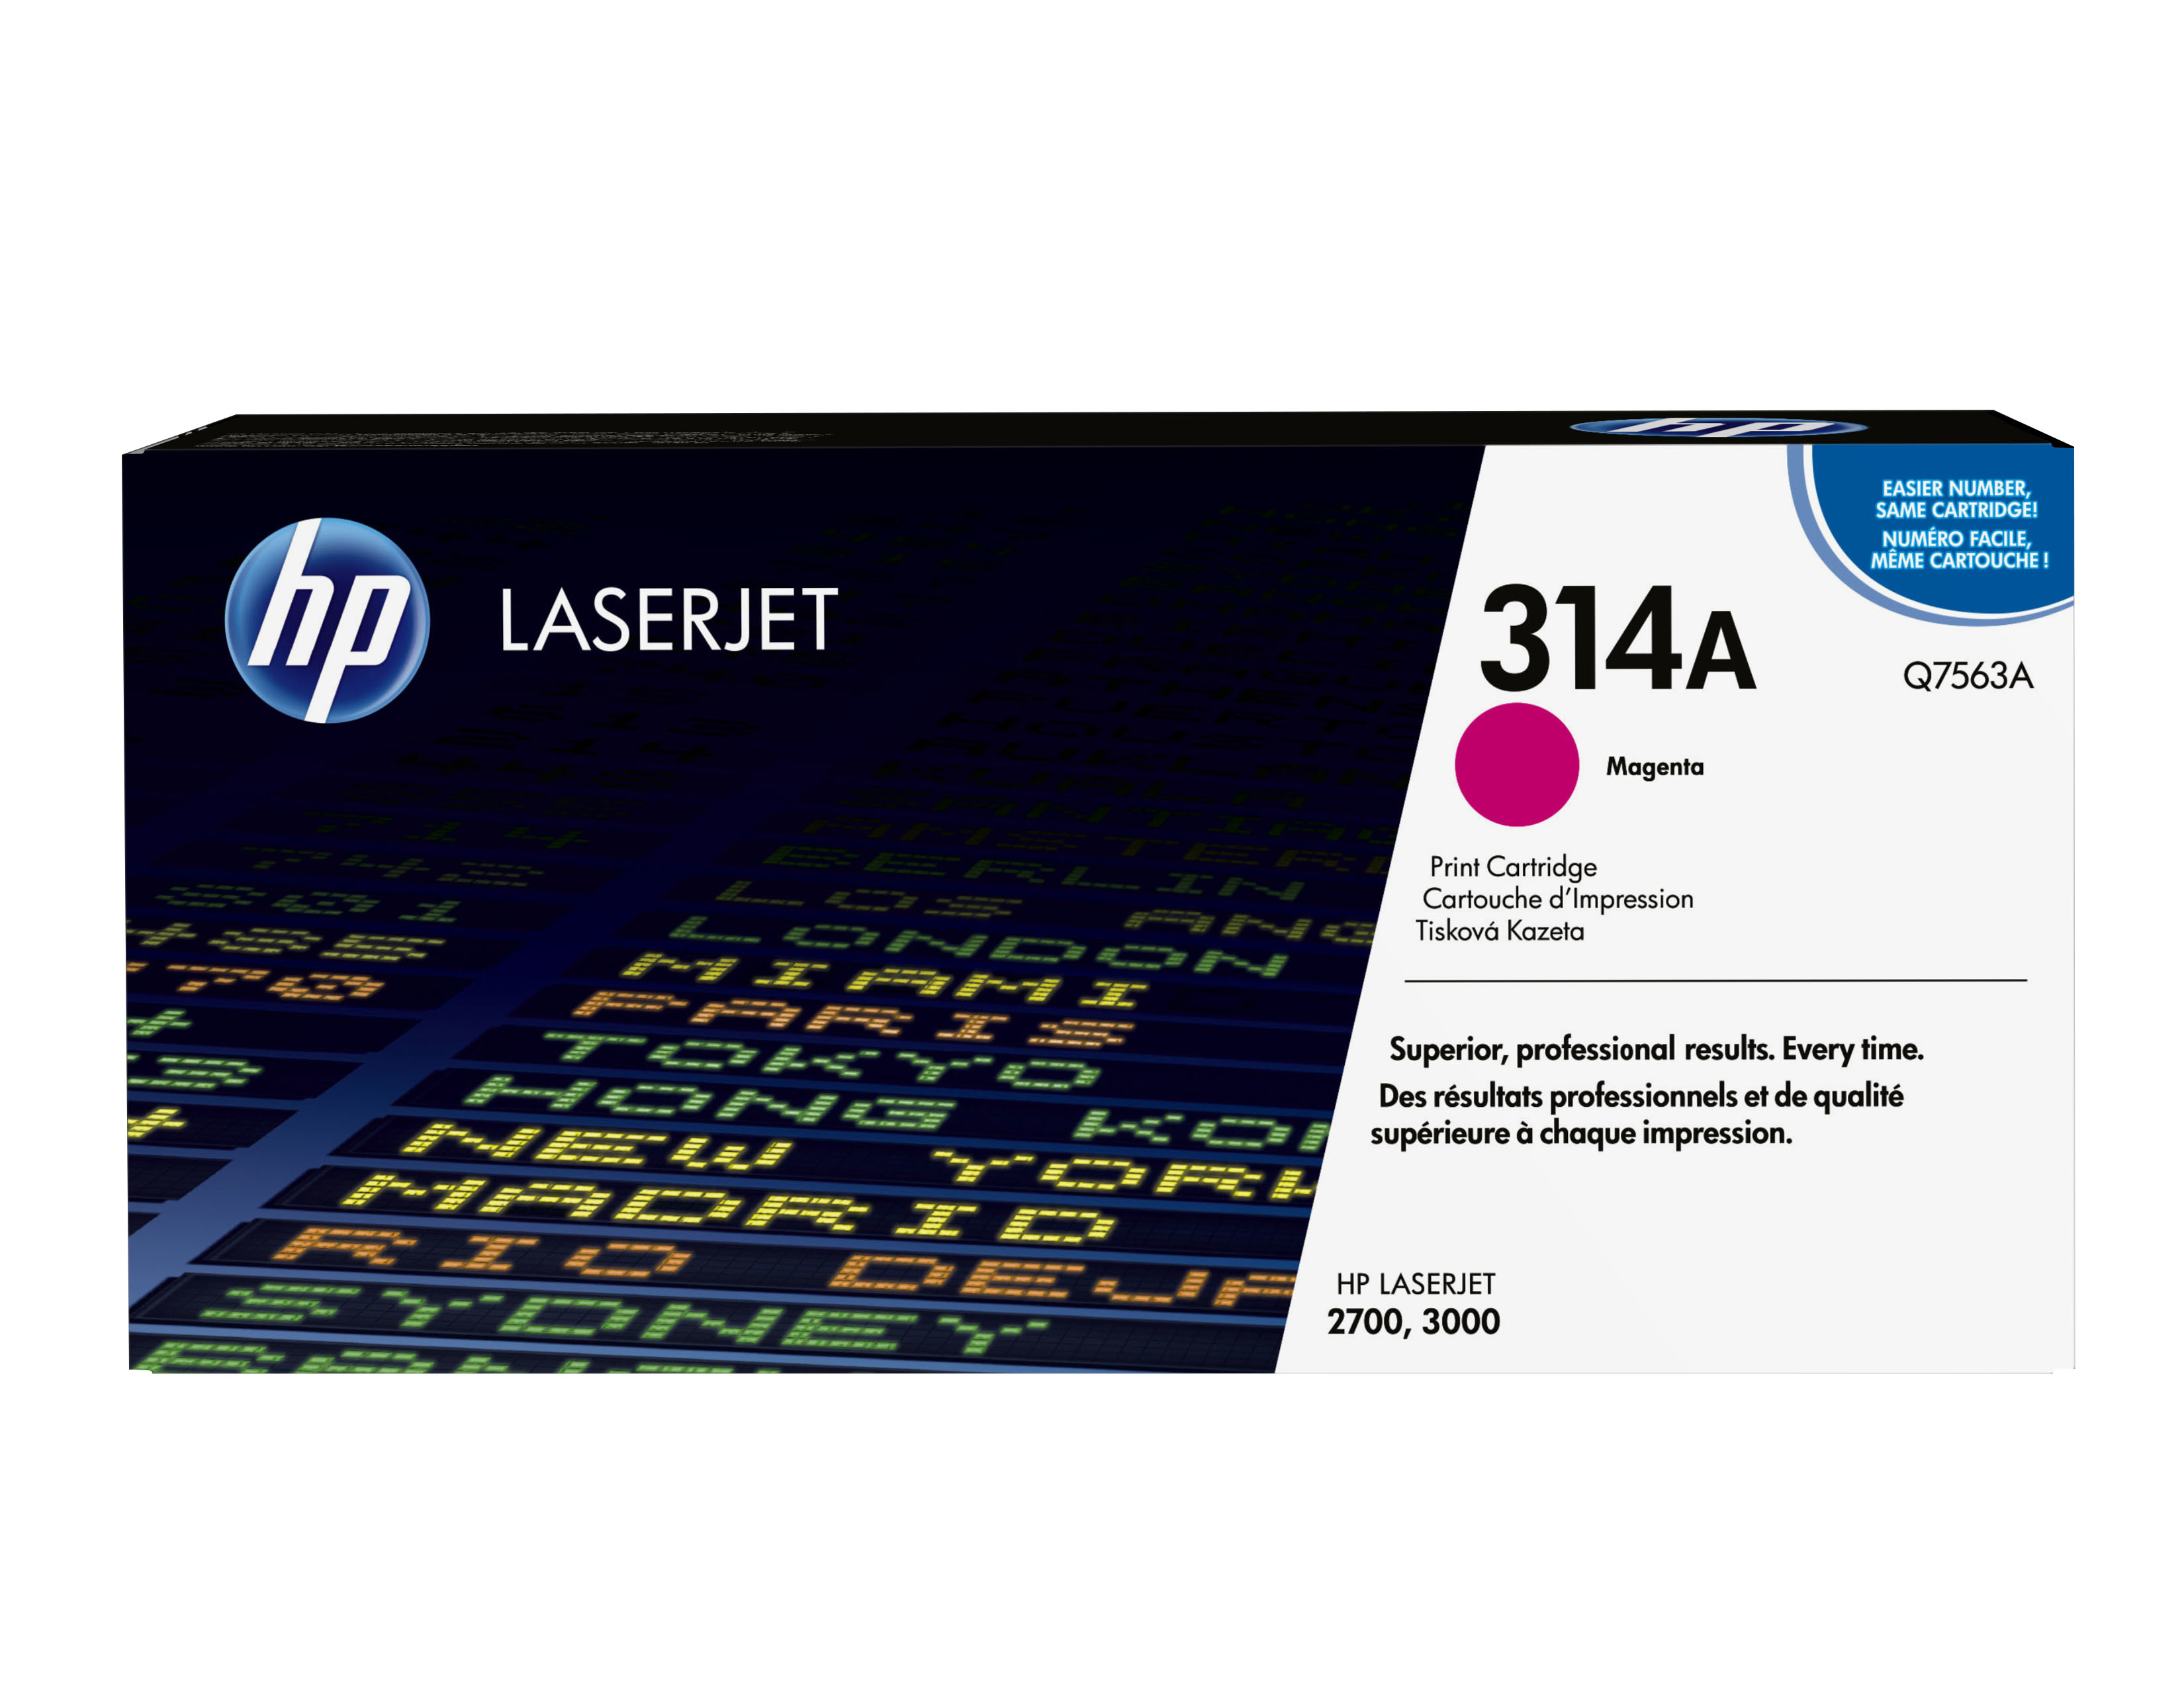 Remanufactured HP Q7563A Toner Cartridge Magenta 4K Q7563A - rem01